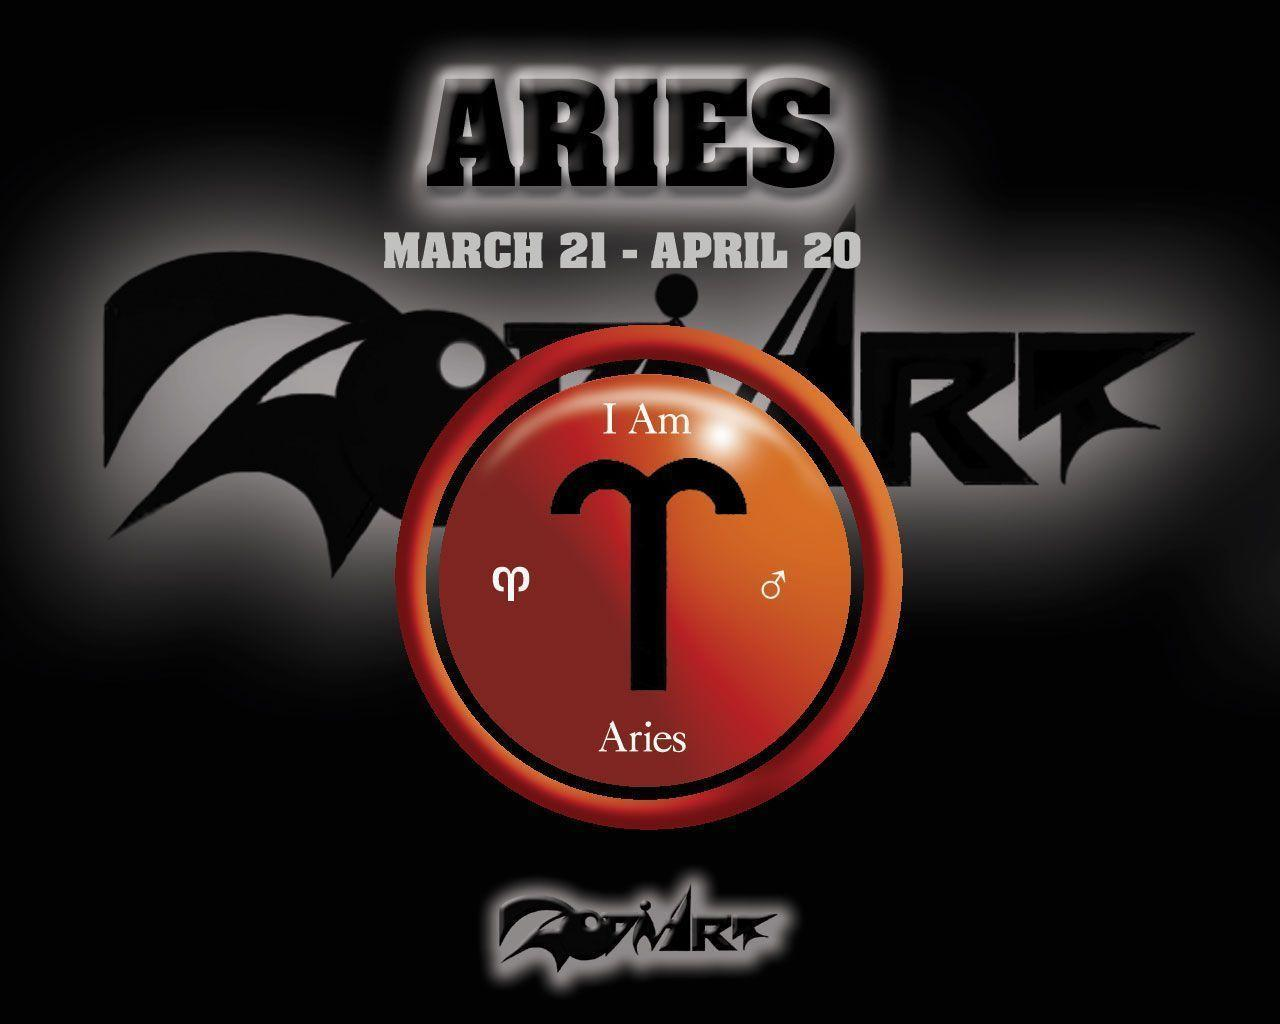 aries sign wallpaper - photo #11